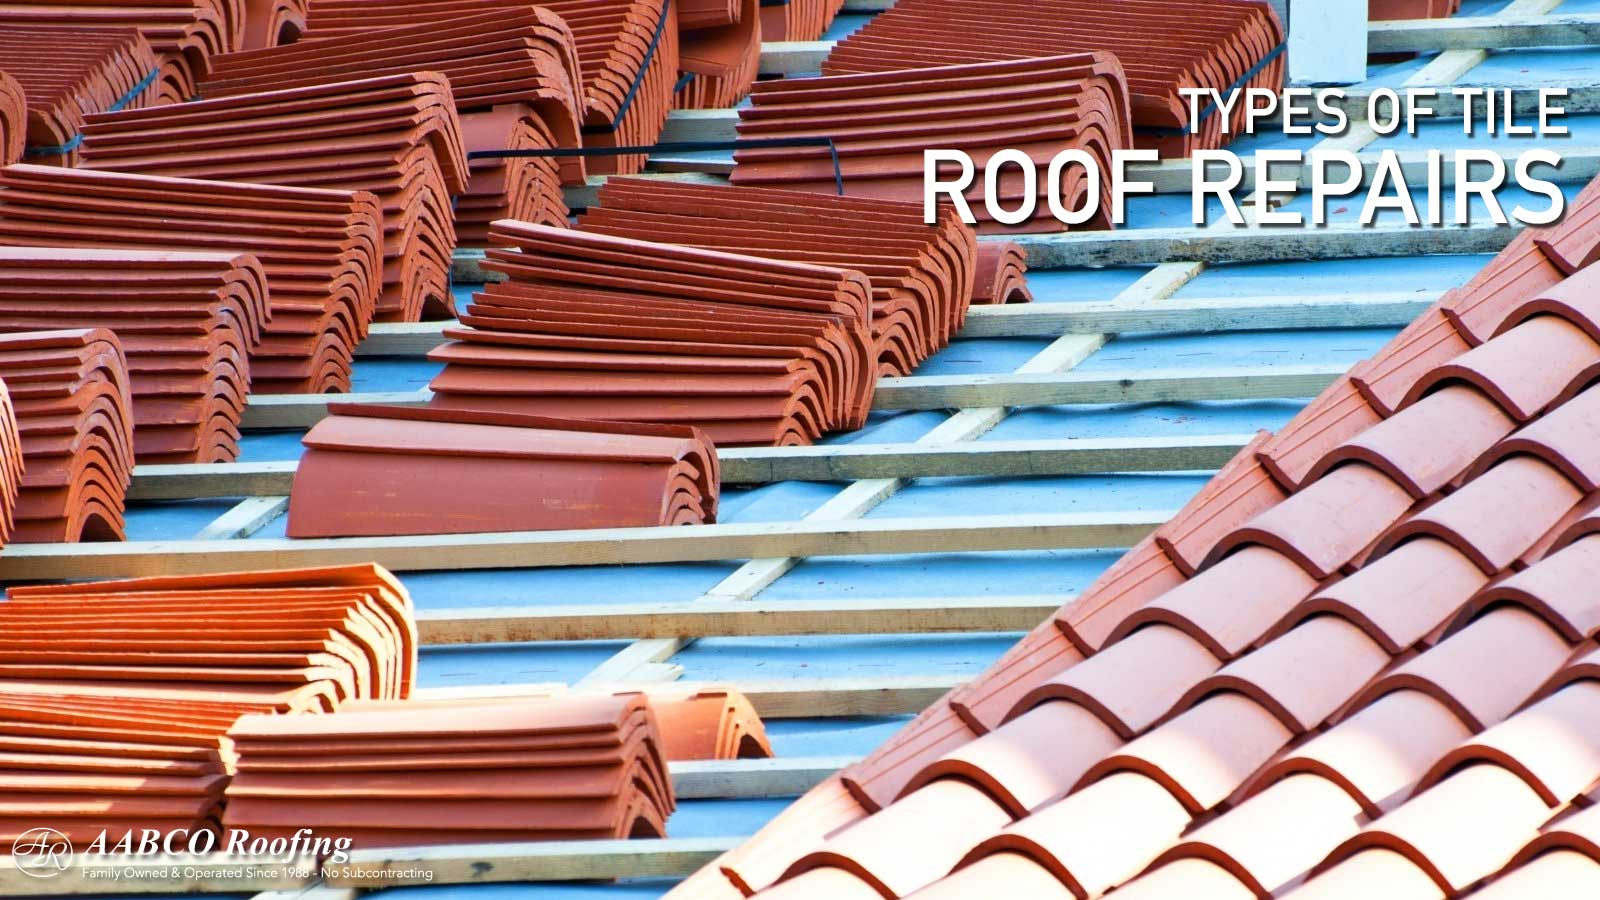 A Tile Roof Repair Guide For Different Types Of Tiles